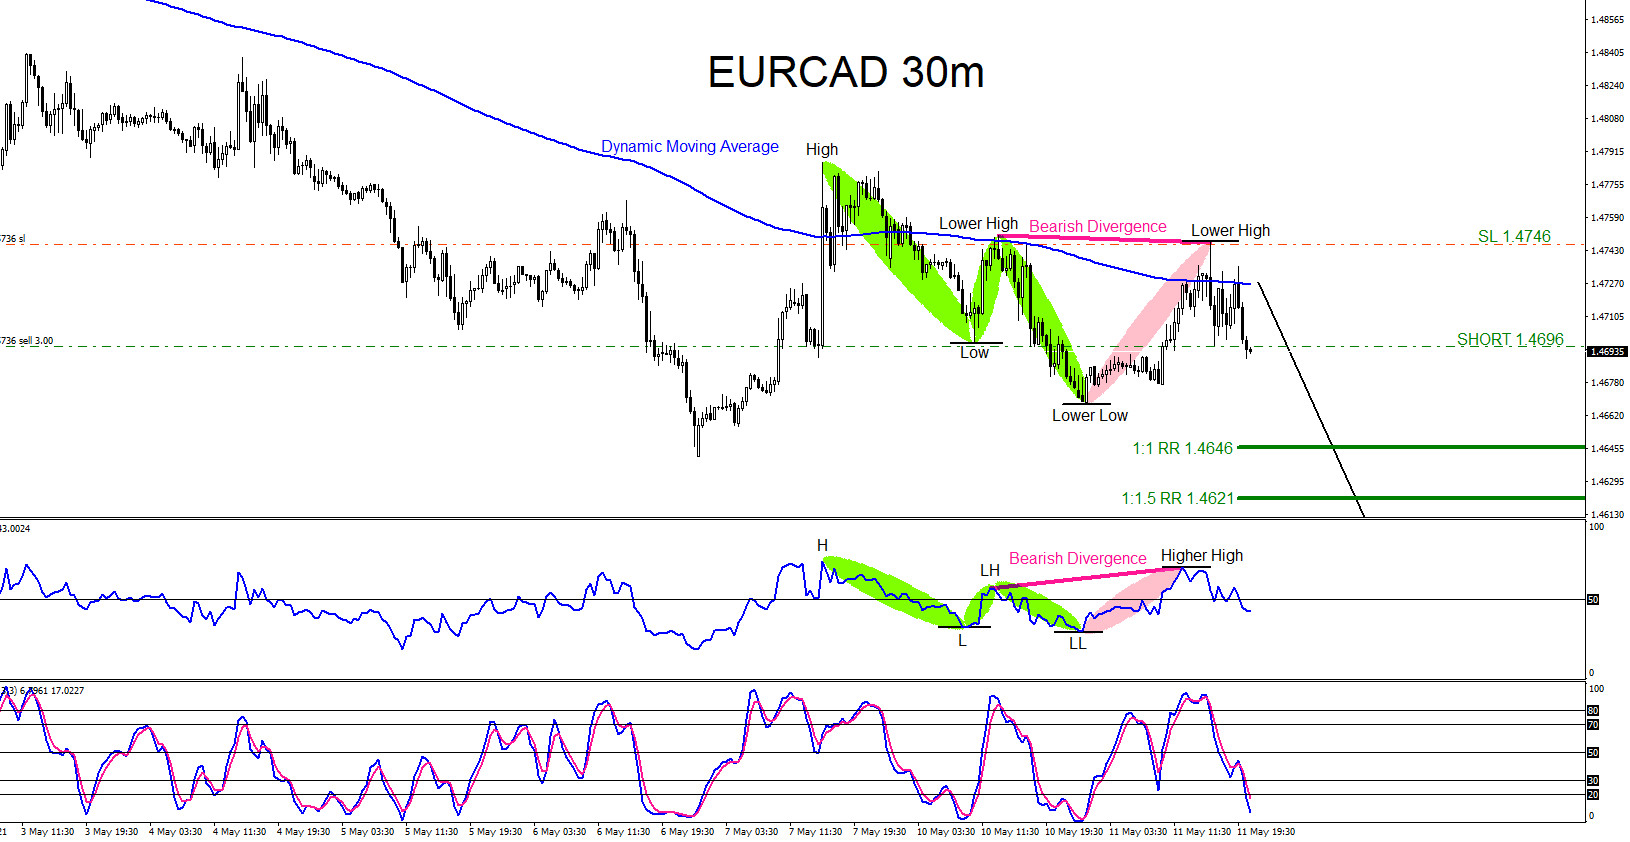 EURCAD : Catching the Move Lower